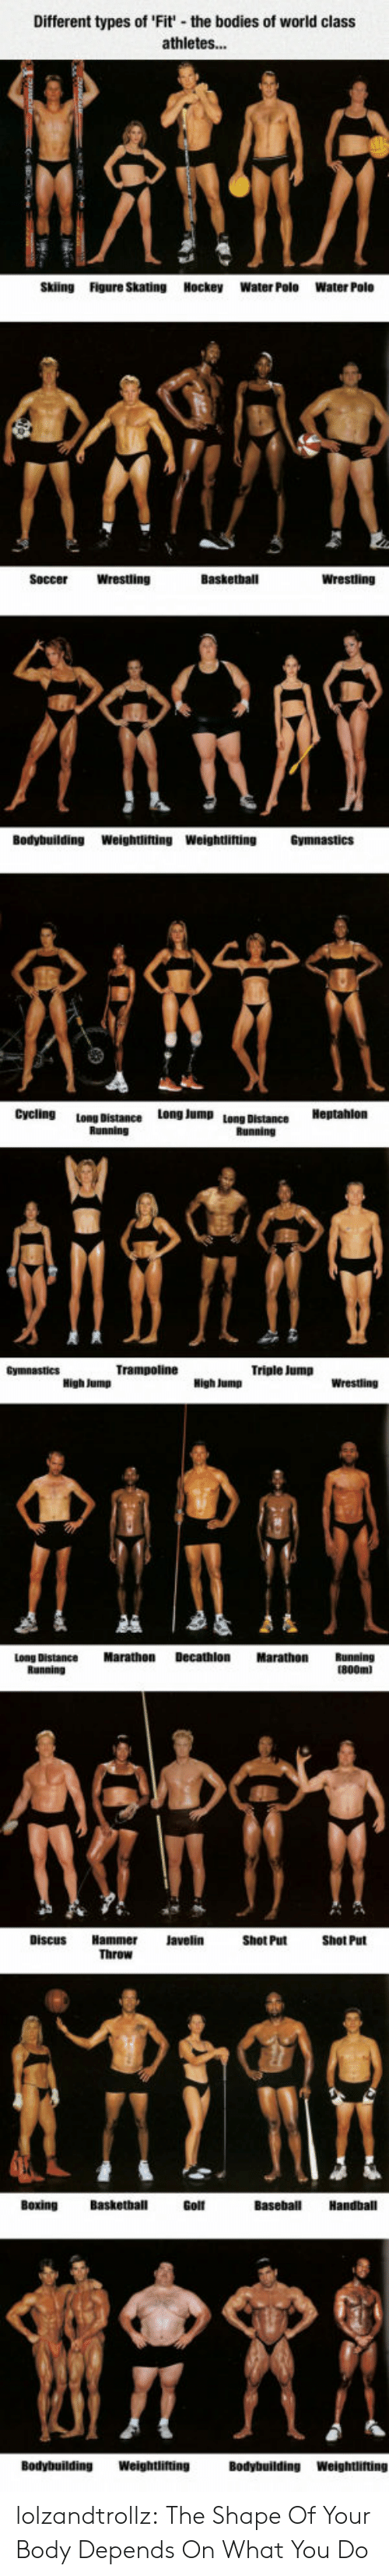 Athletes: Different types of 'Fit' the boo  of world class  athletes...  Skiing  Figure Skating Hockey  Water Polo  Water Polo  Basketball  Wrestling  Wrestling  Soccer  Bodybuilding  Weightlifting Weightlifting  Cycling  Long Jump  Long Distance  Bunninn  Triple Jump  Decathlon  Marathon  Marathon  Long Distance  Shot Put  Throw  Basketball  Baseball  Handball  Bοxing  Golf  Weightlifting  Bodybuilding  Bodybuilding  Weightlifting lolzandtrollz:  The Shape Of Your Body Depends On What You Do